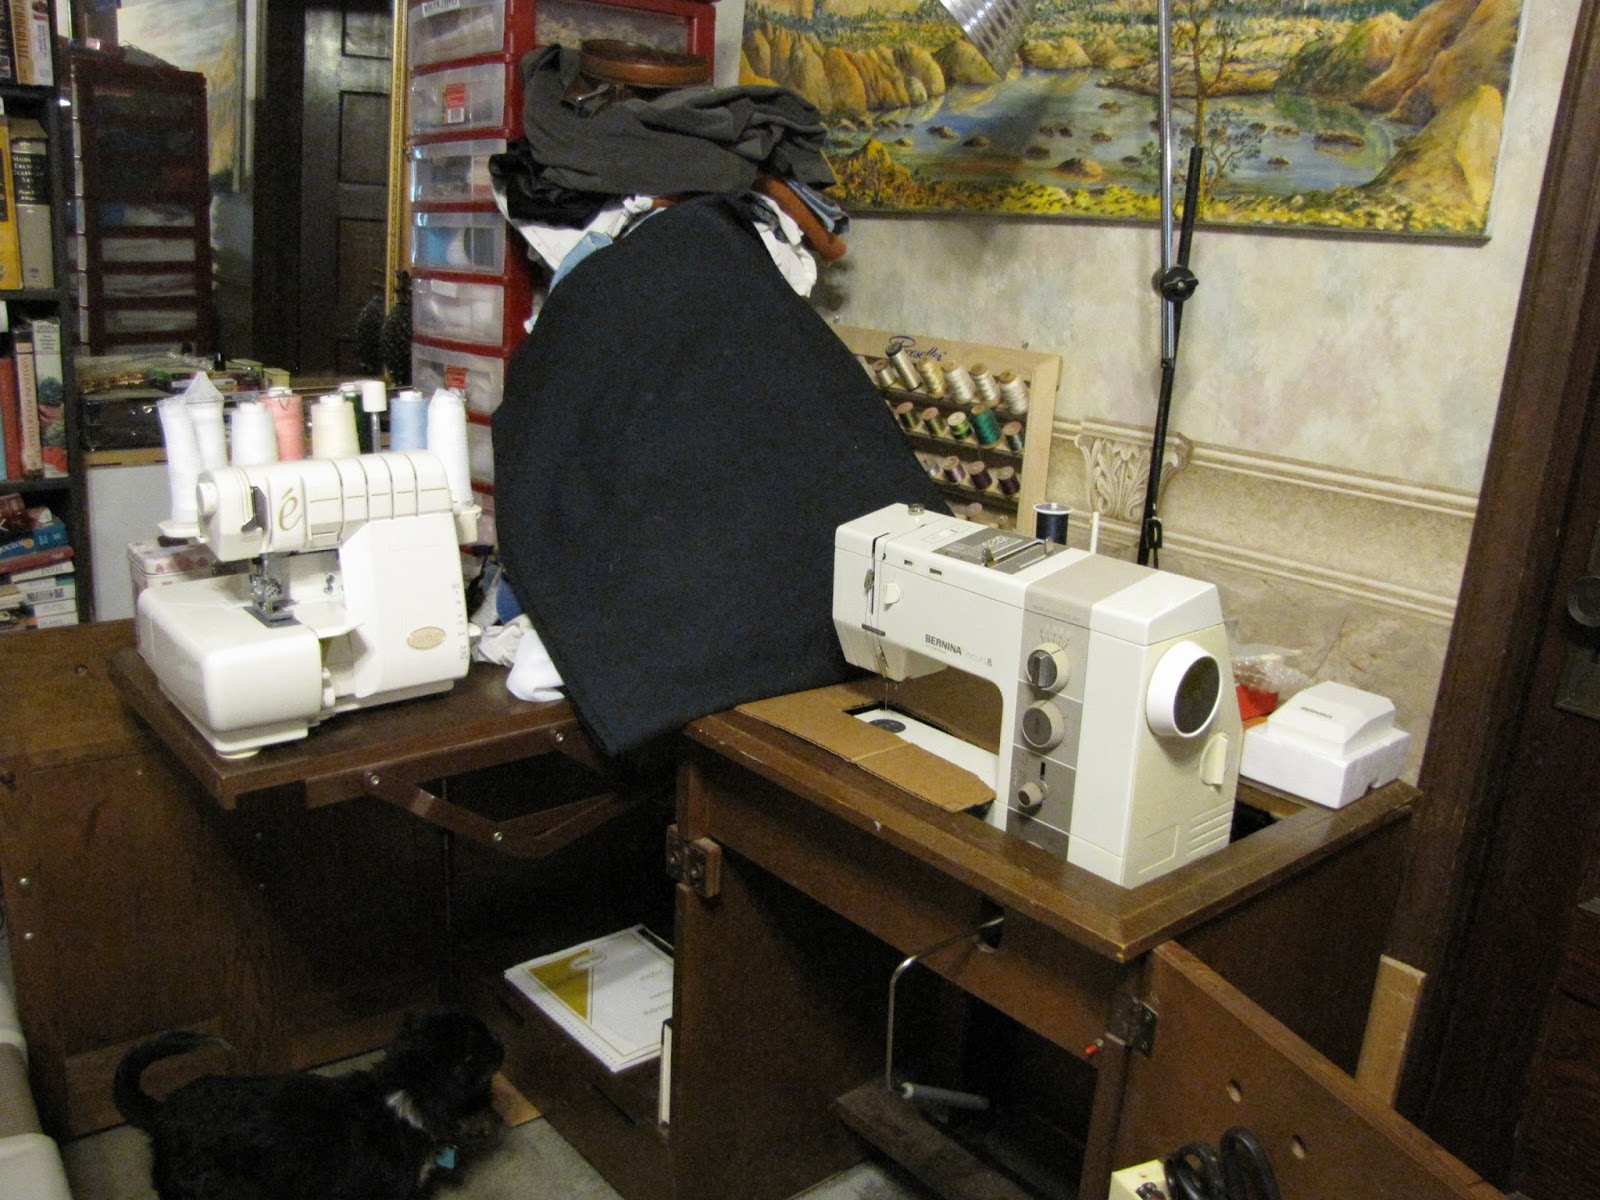 My Very Favorite Sewing Machine Curly Is The Bernina 930 Record Electronic Was An Expensive When It New